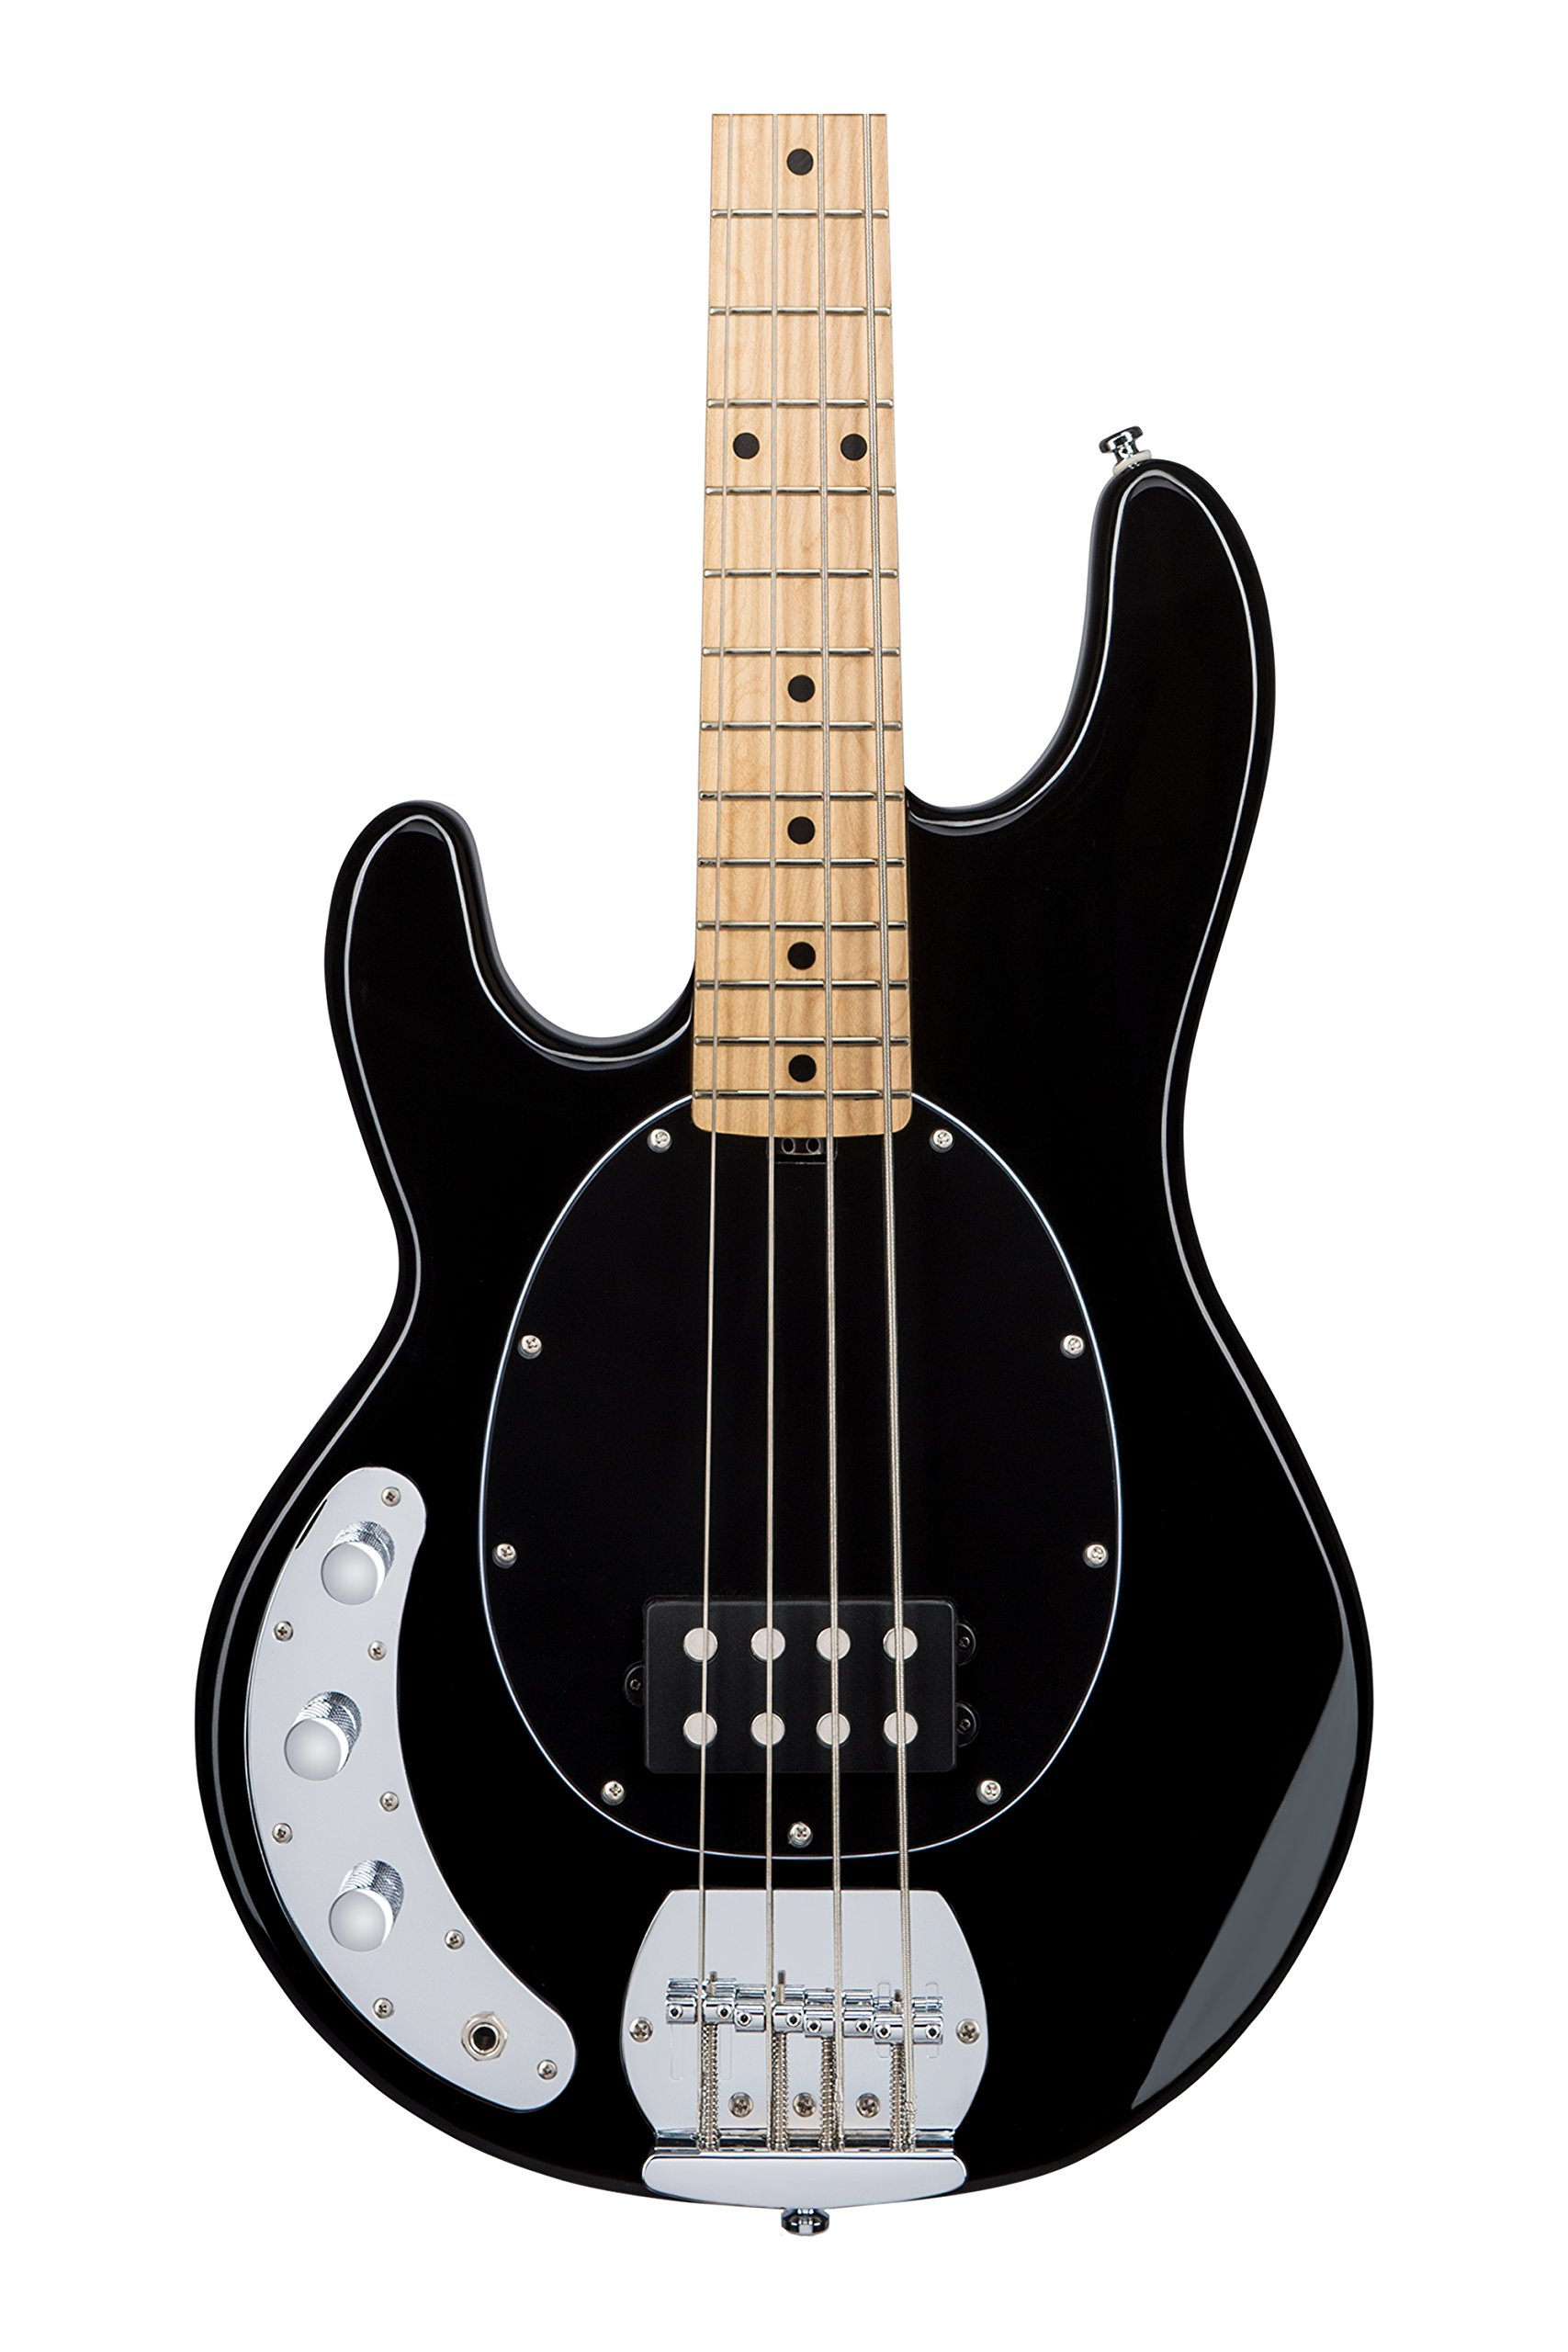 Sterling by Music Man S.U.B. Series Ray4 StingRay Bass, Left-Handed, Black by Sterling by Music Man (Image #2)